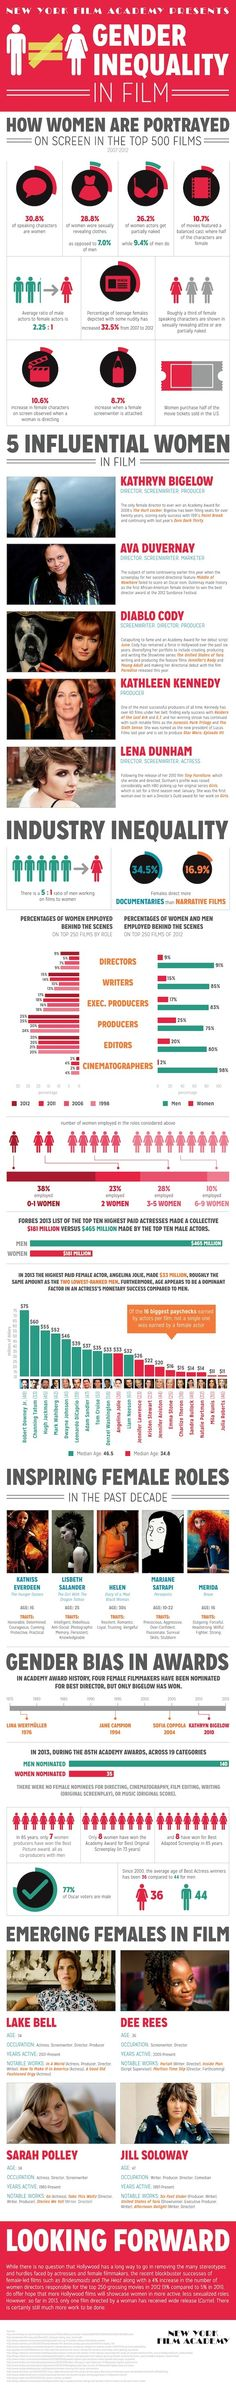 Gender Inequality in Film: In Infographic Form. Sobering reading